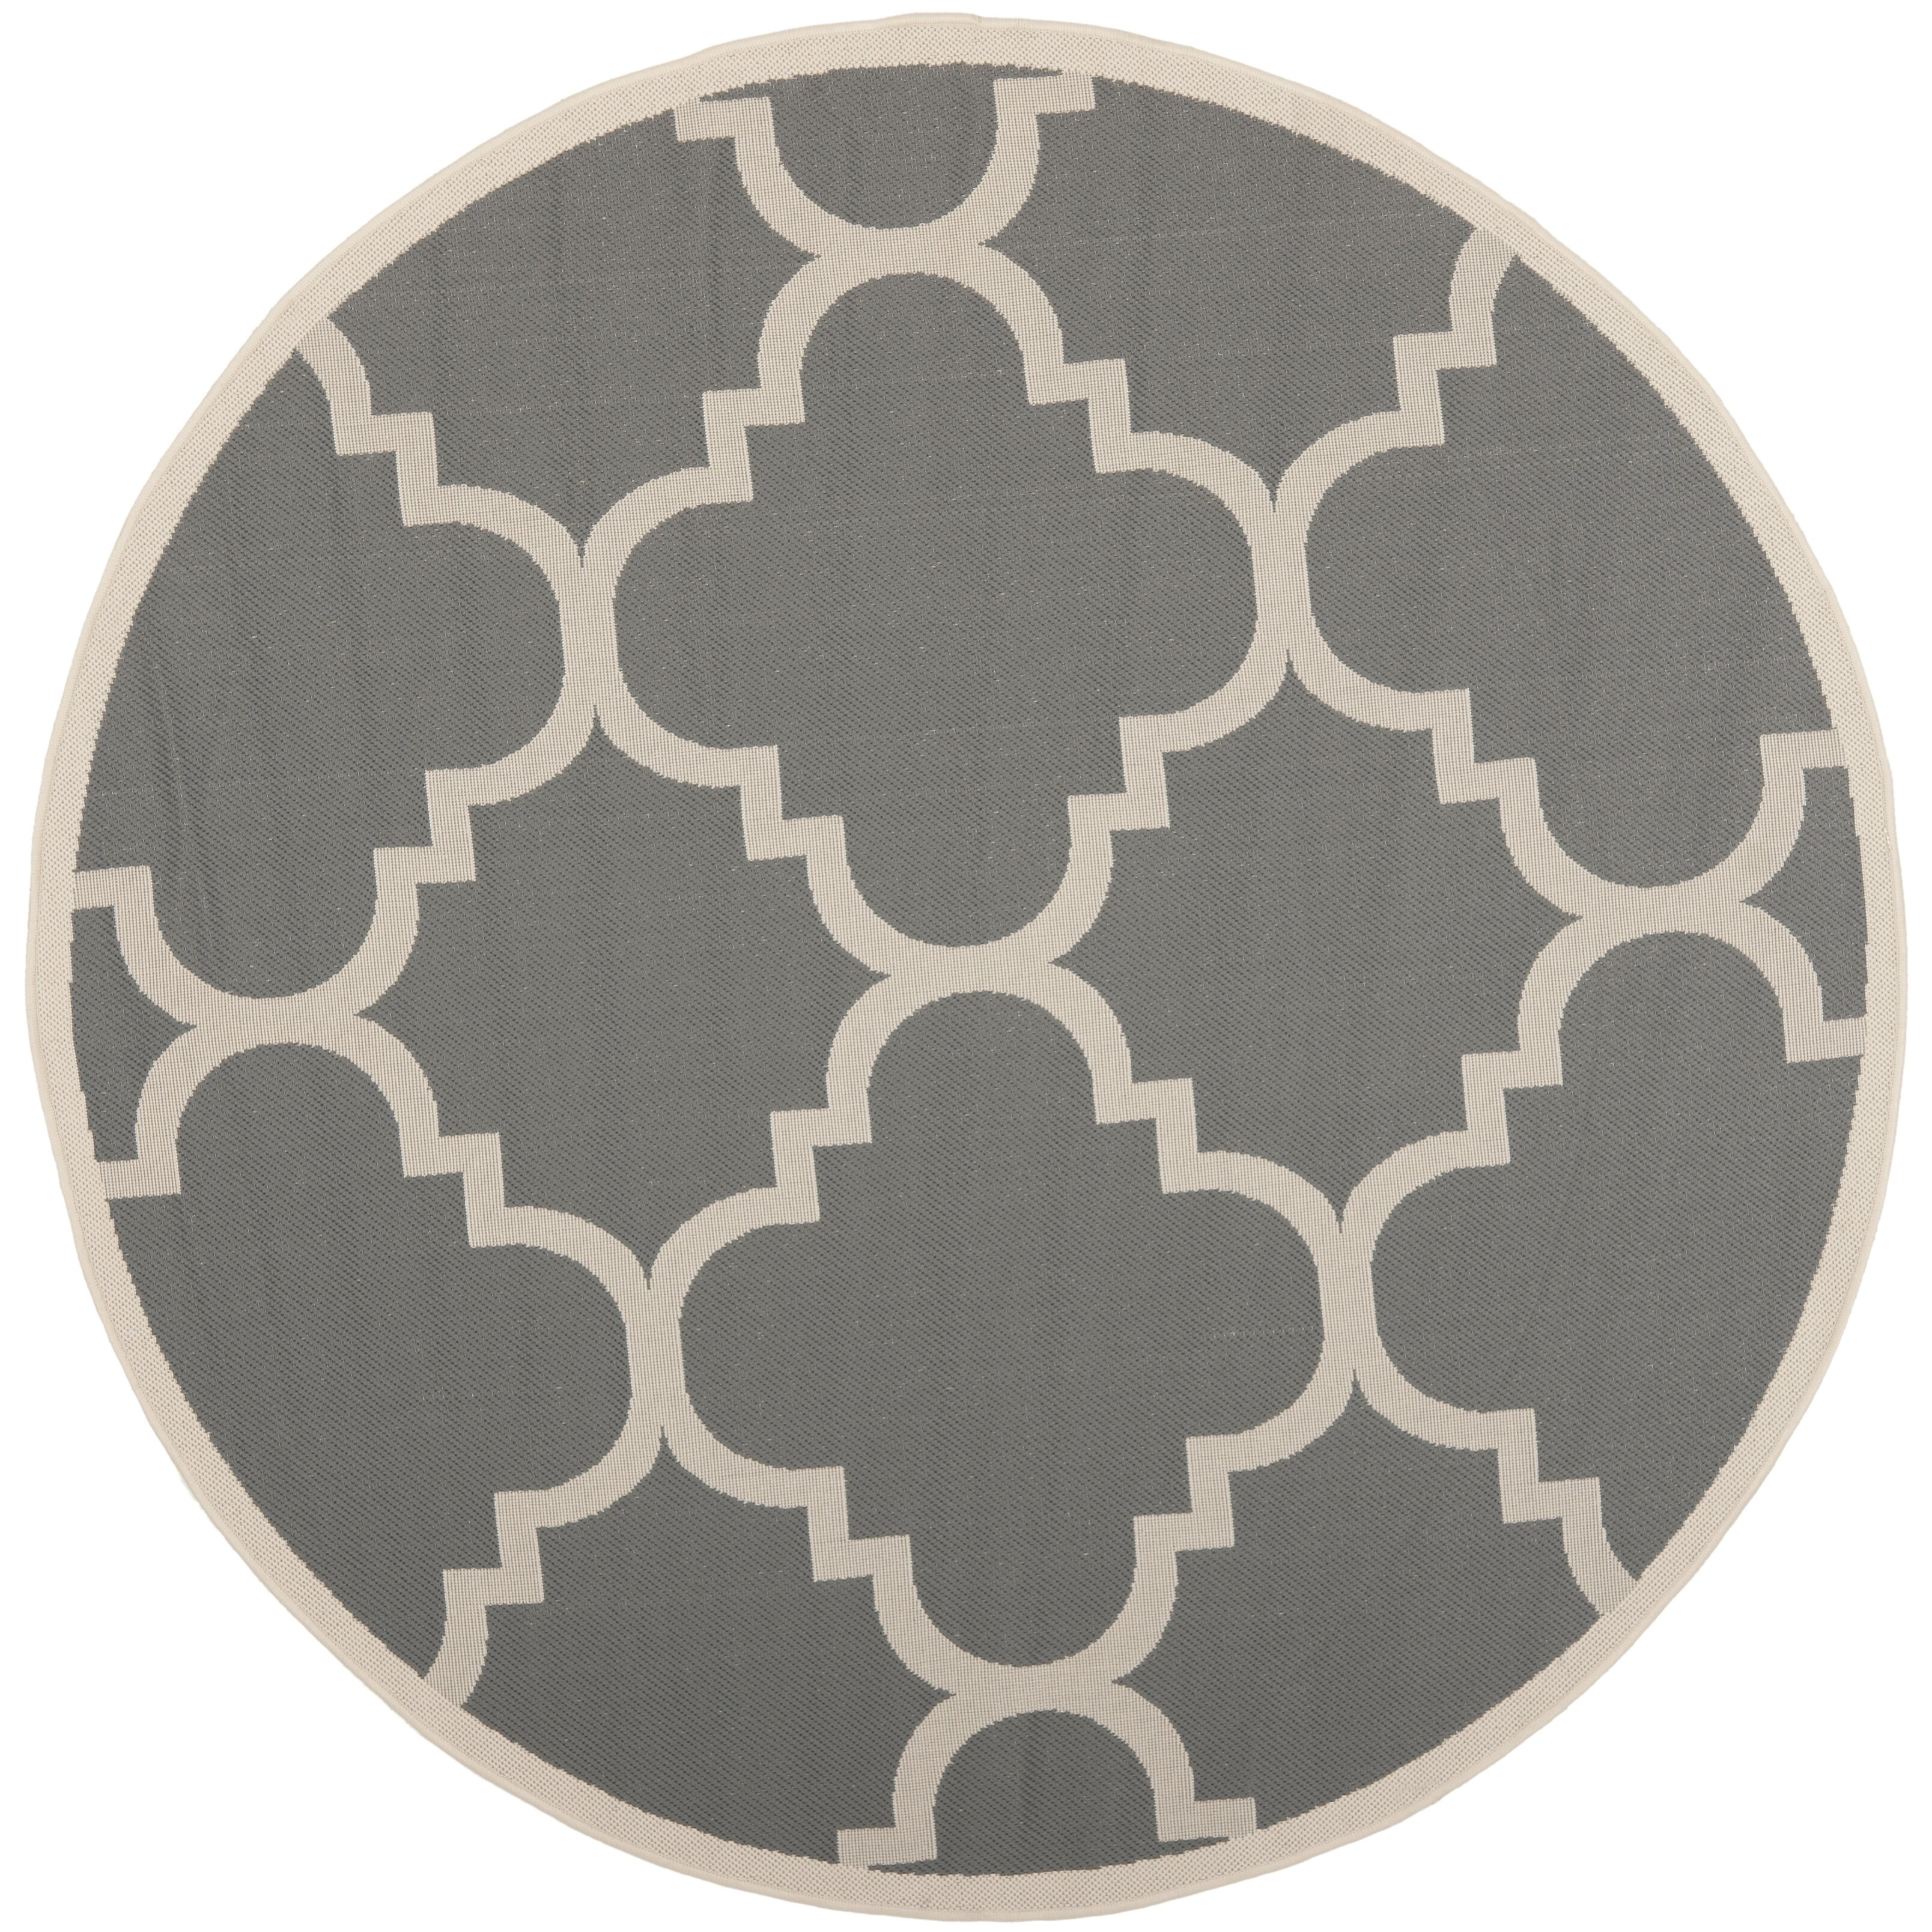 Safavieh courtyard grey beige area rug reviews wayfair for Grey and tan rug